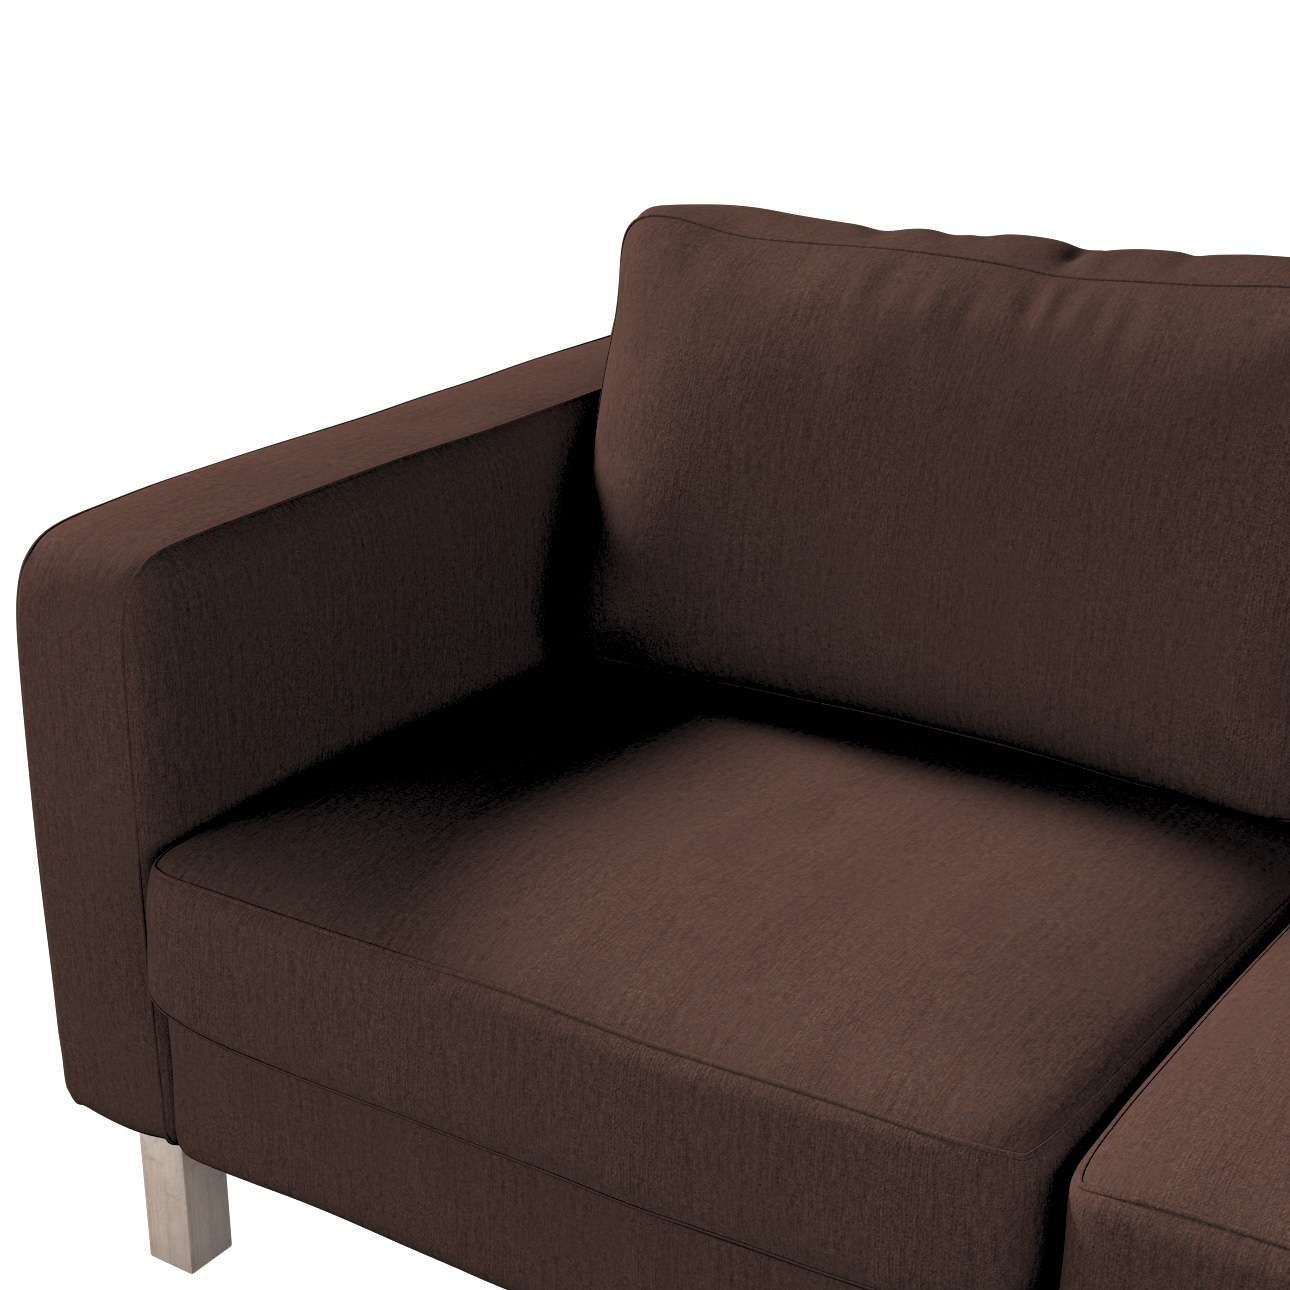 Karlstad 2-seater sofa cover in collection Chenille, fabric: 702-18